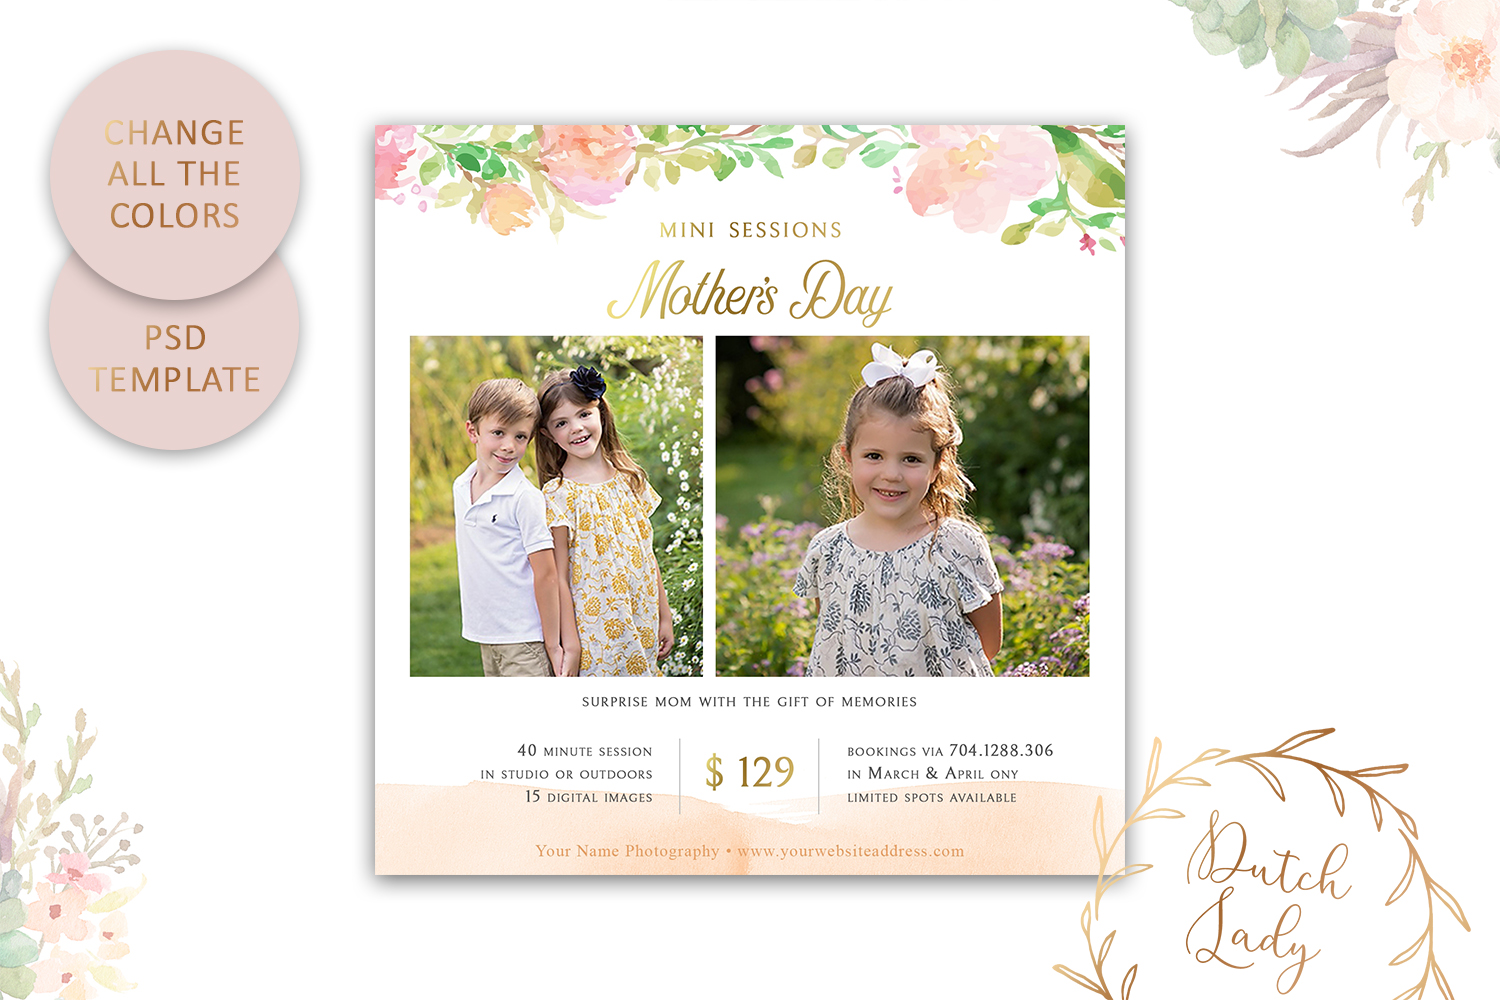 PSD Photo Mother's Day Mini Session Card Template - #41 example image 4